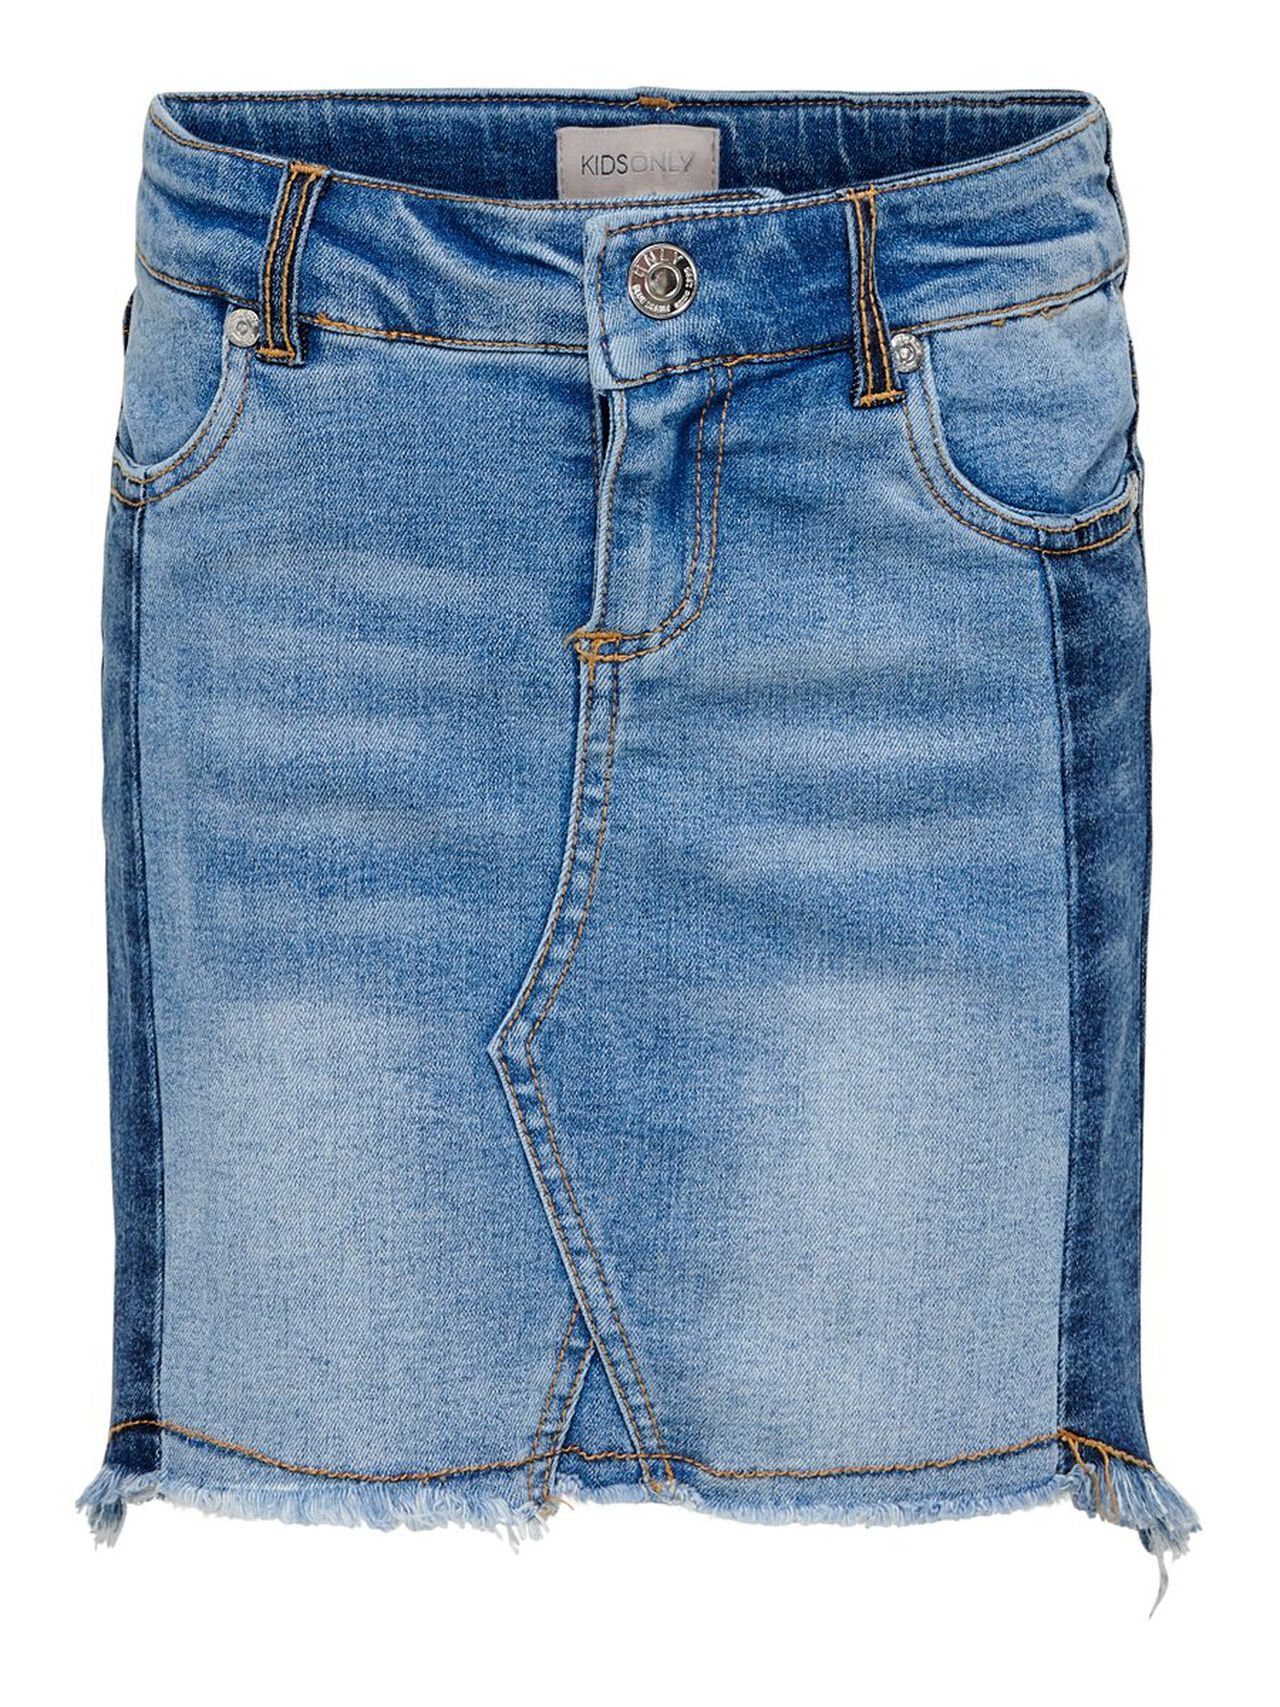 e85d54c272 Kids only regular fit denim skirt | ONLY